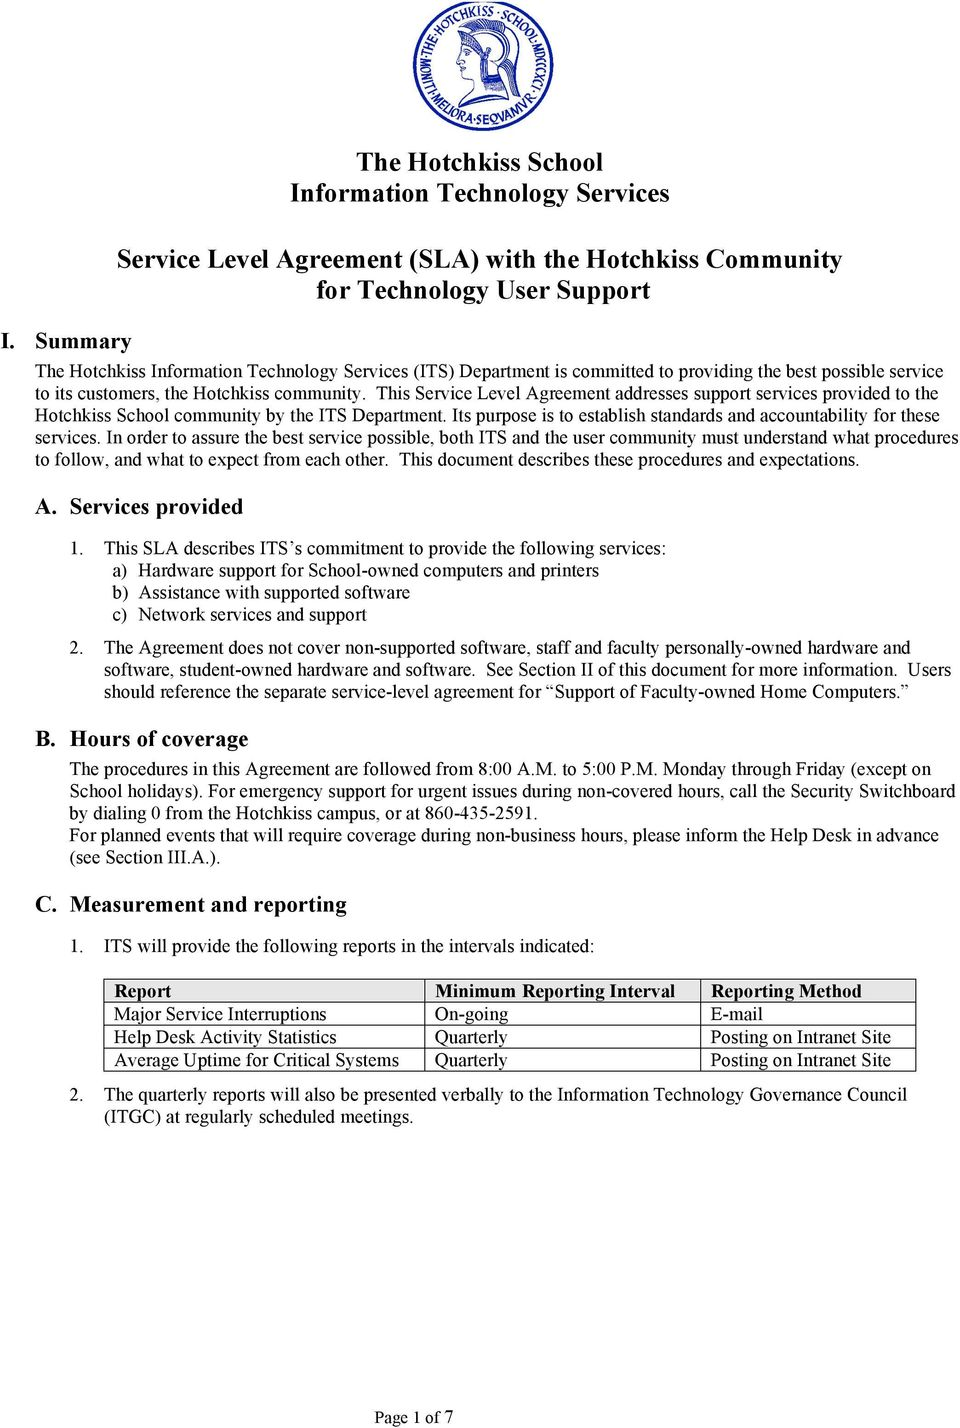 This Service Level Agreement addresses support services provided to the Hotchkiss School community by the ITS Department. Its purpose is to establish standards and accountability for these services.